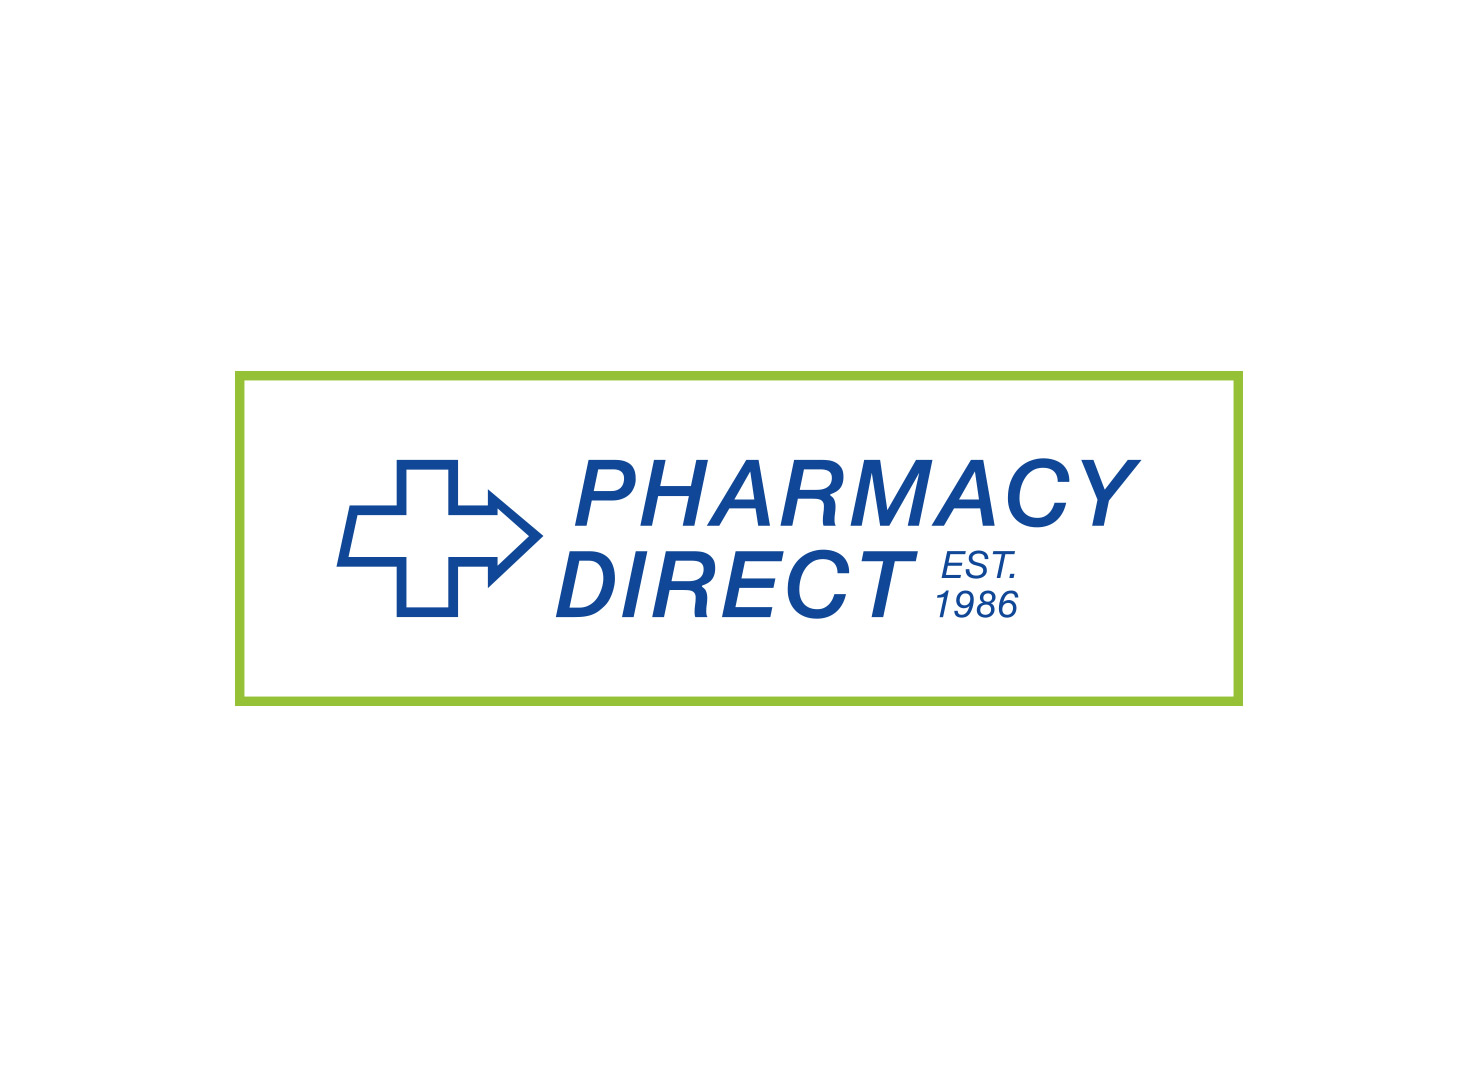 Meds Direct Pharmacy is dedicated to treating injured patients. Whether it's an auto accident related injury, workers compensation, slip and fall or dog bite, Meds Direct is dedicated to saving you time and money by getting your physician prescribed medications .